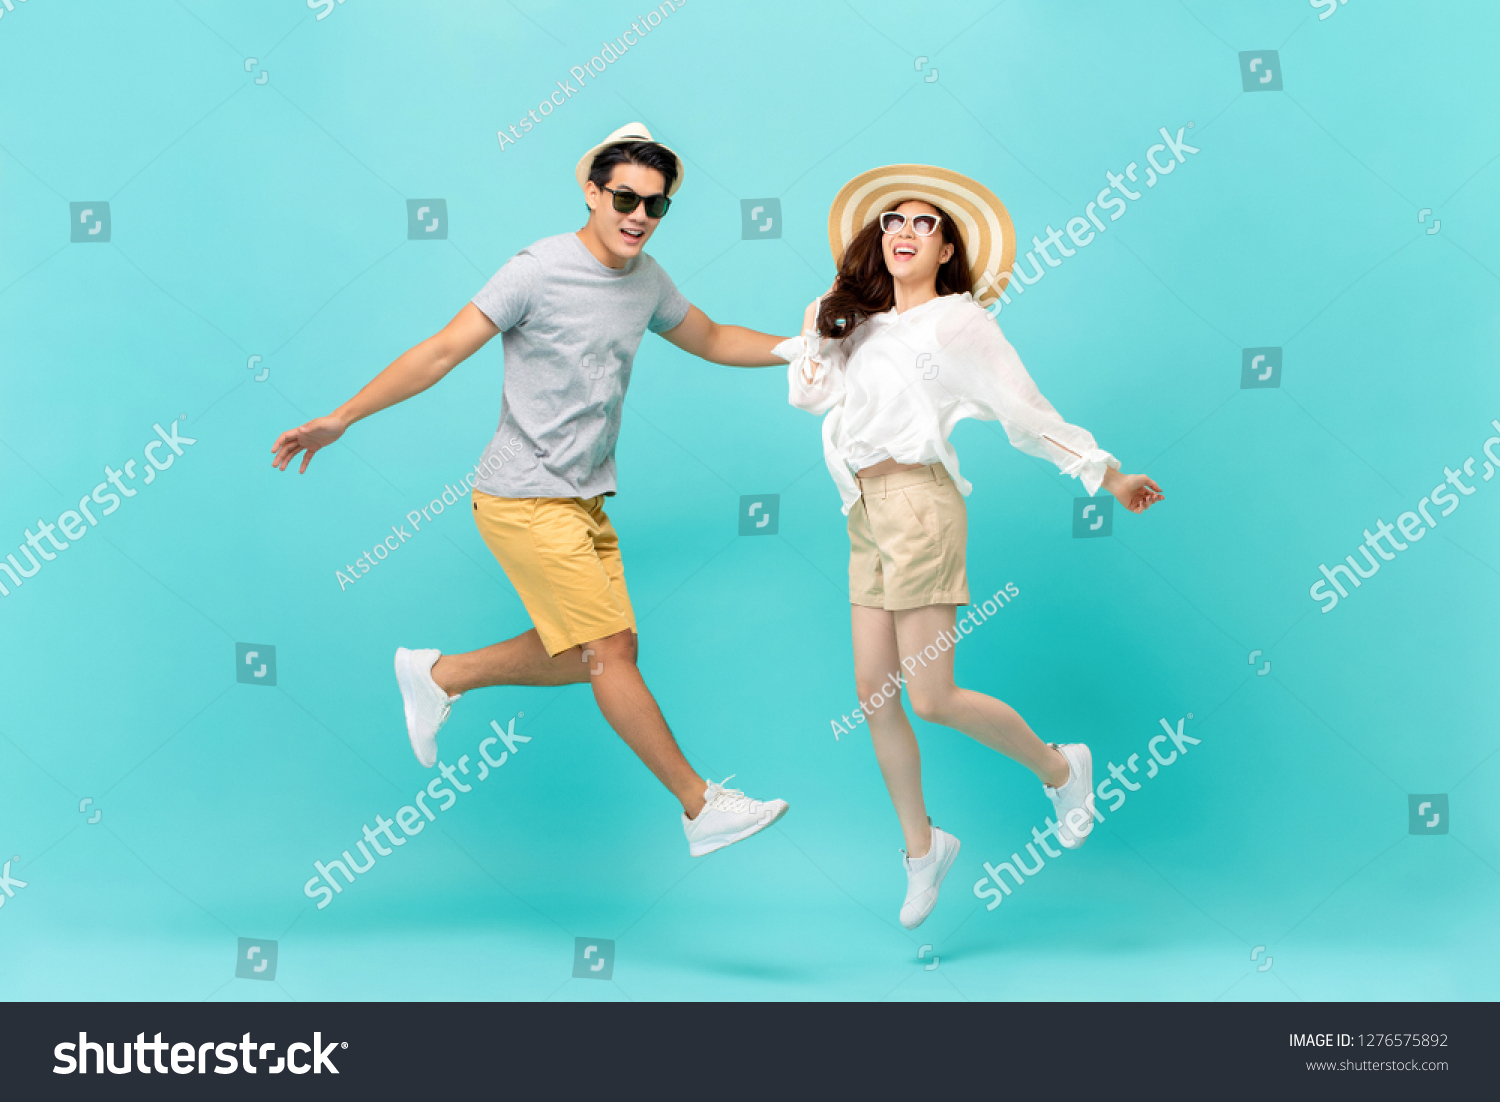 Playful energetic Asian couple in summer beach casual clothes jumping isolated on light blue background studio shot #1276575892